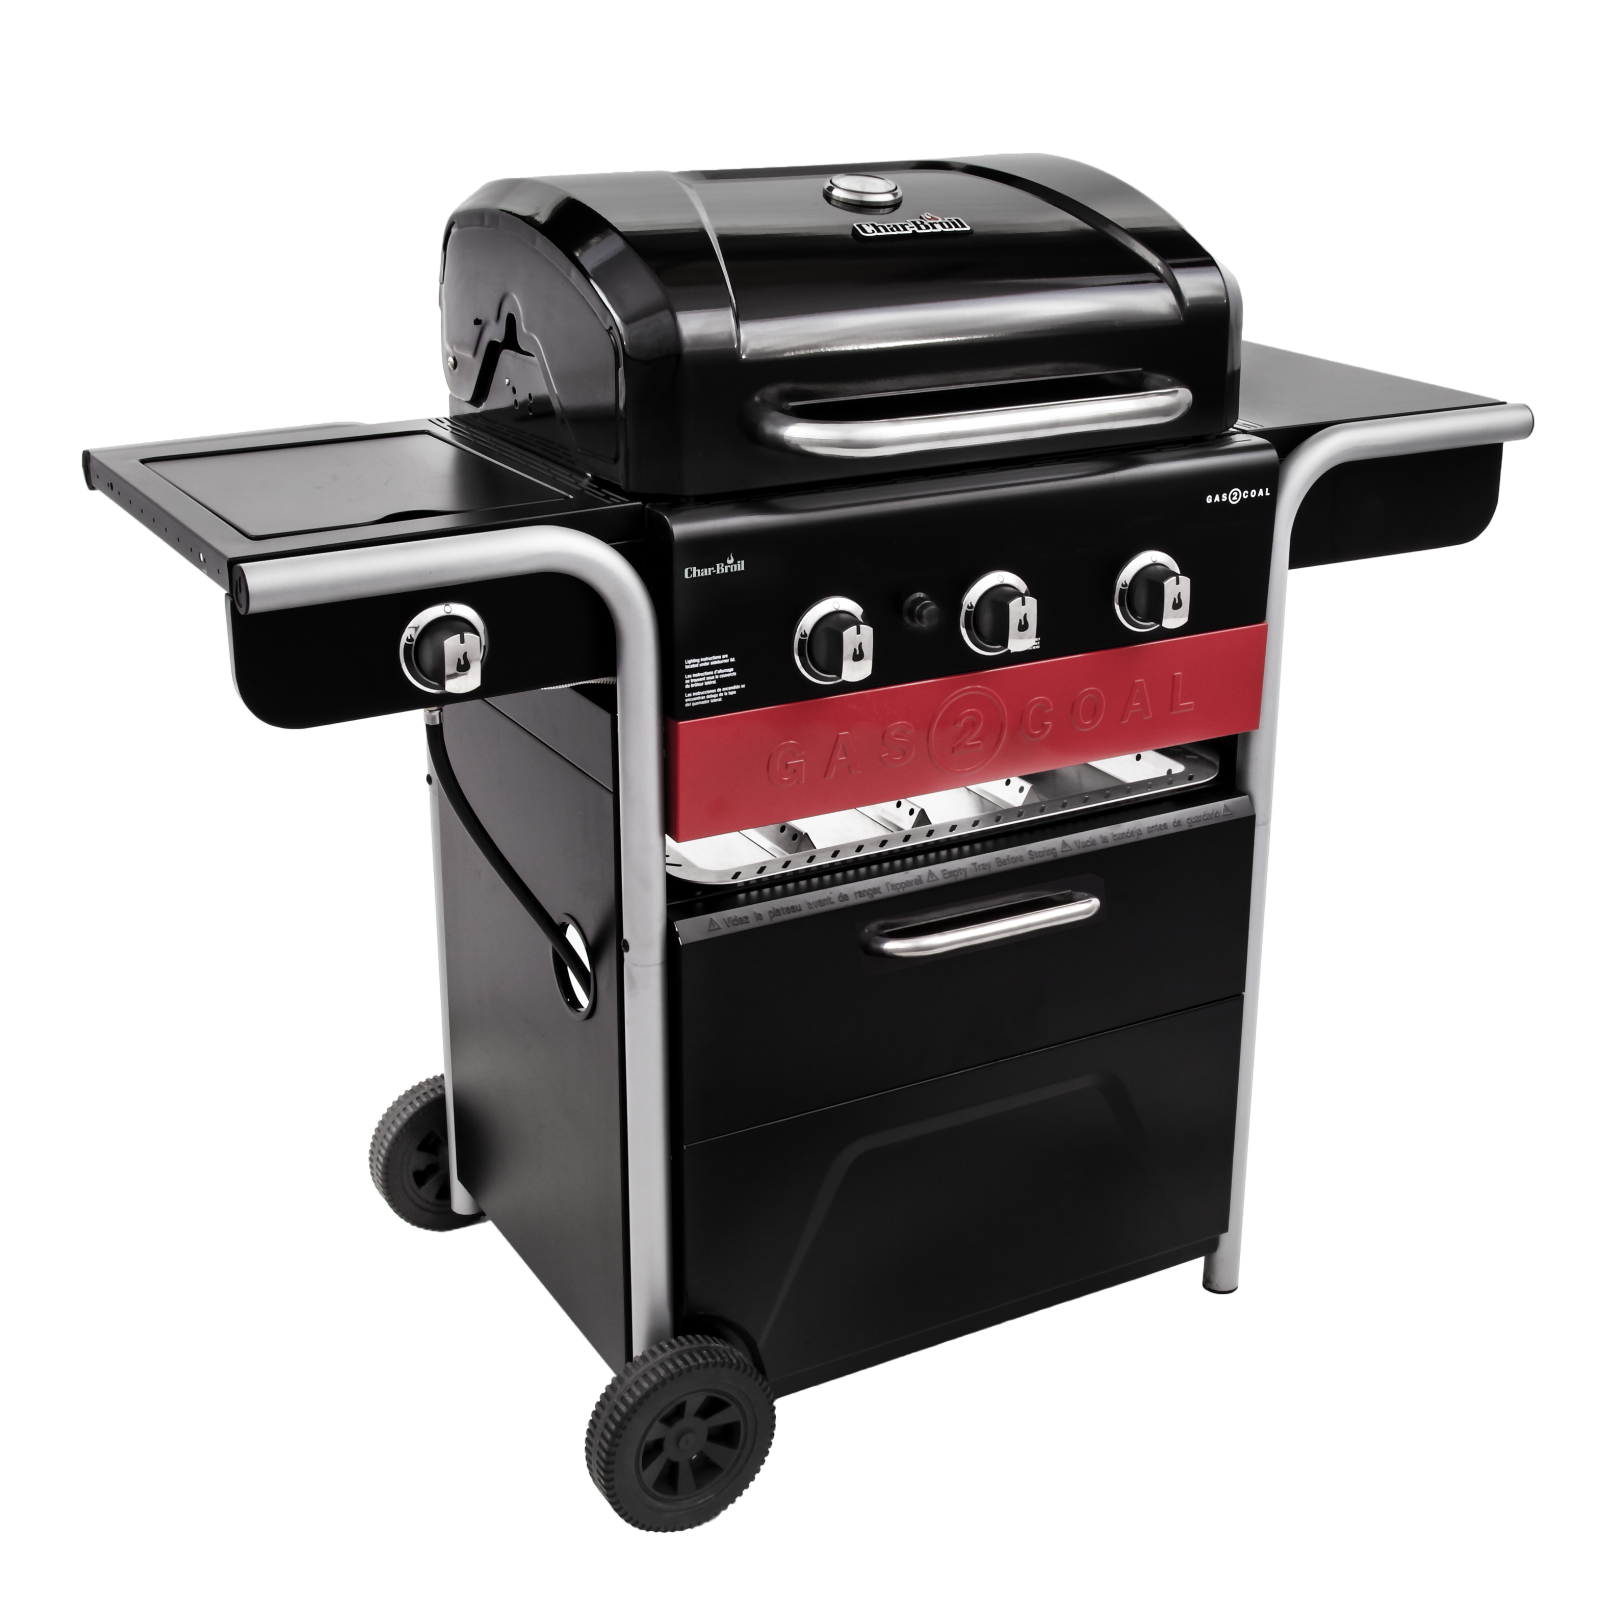 Gas2coal 3 Burner Hybrid Grill Char Broil